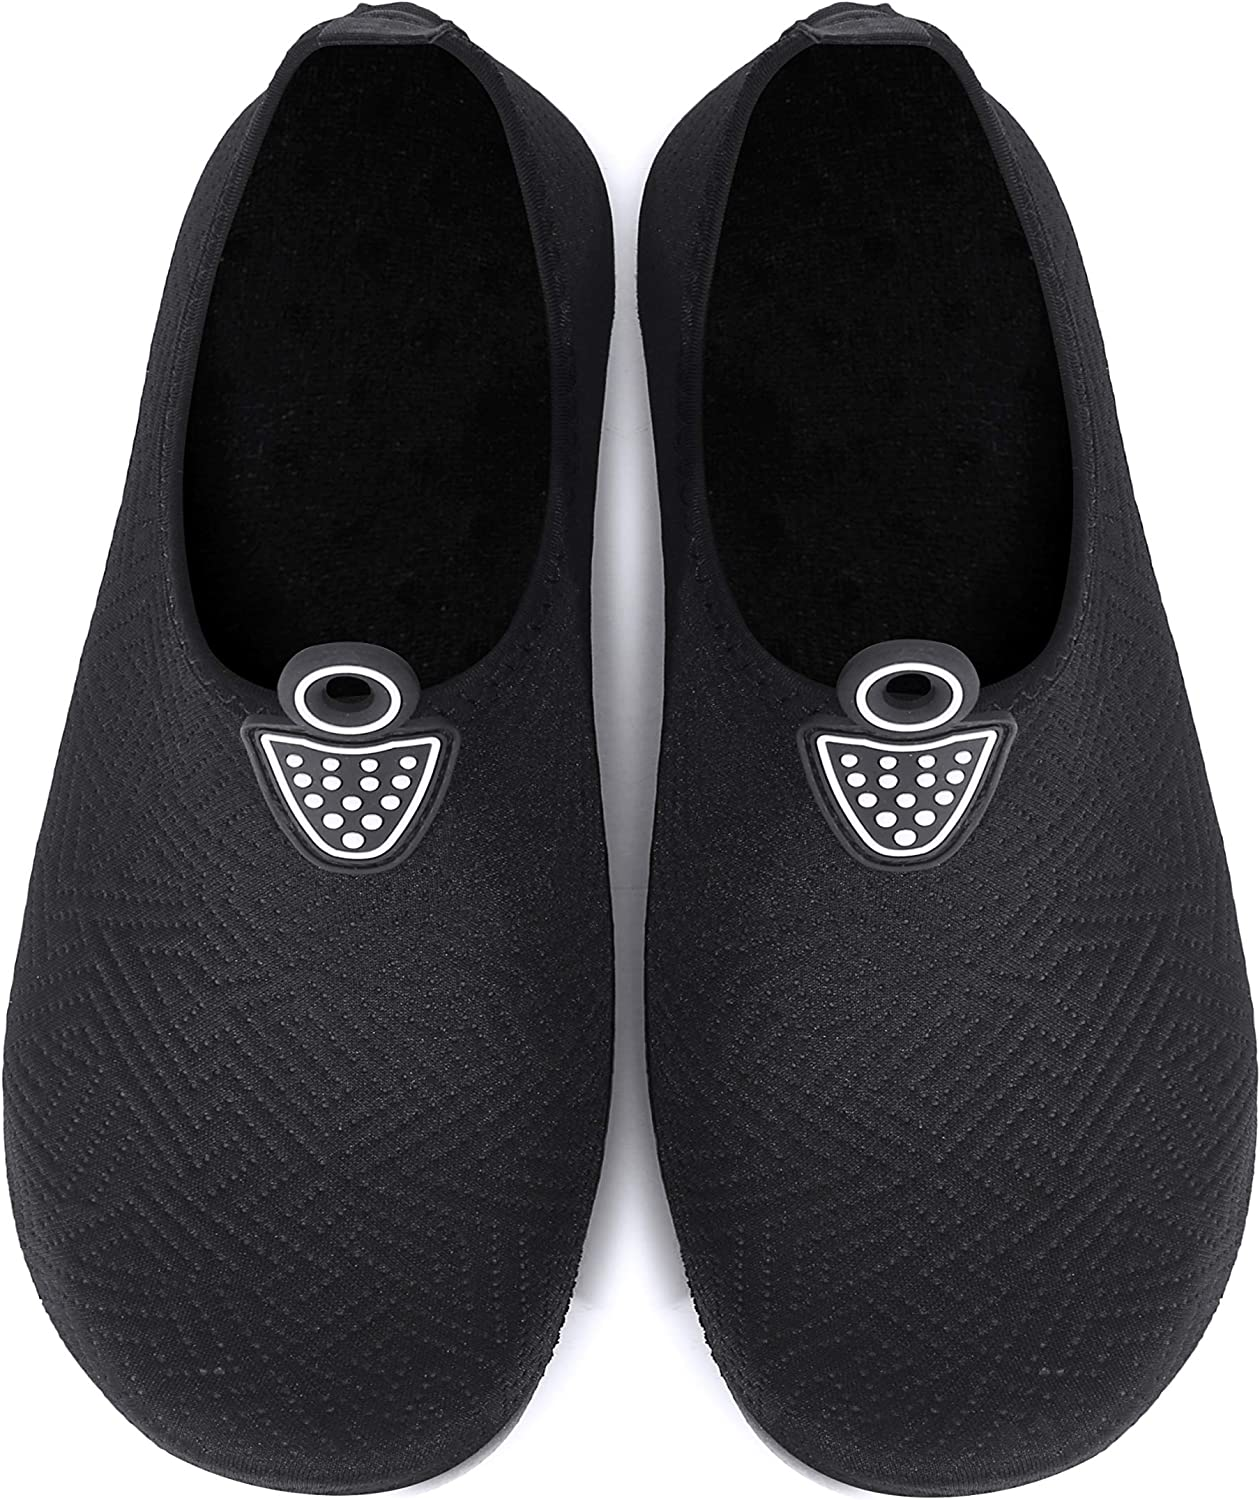 ANFTFH Womens Mens Water Shoes Barefoot Skin Shoes Quick-Dry Water Shoe for Dive Surf Swim Beach Yoga